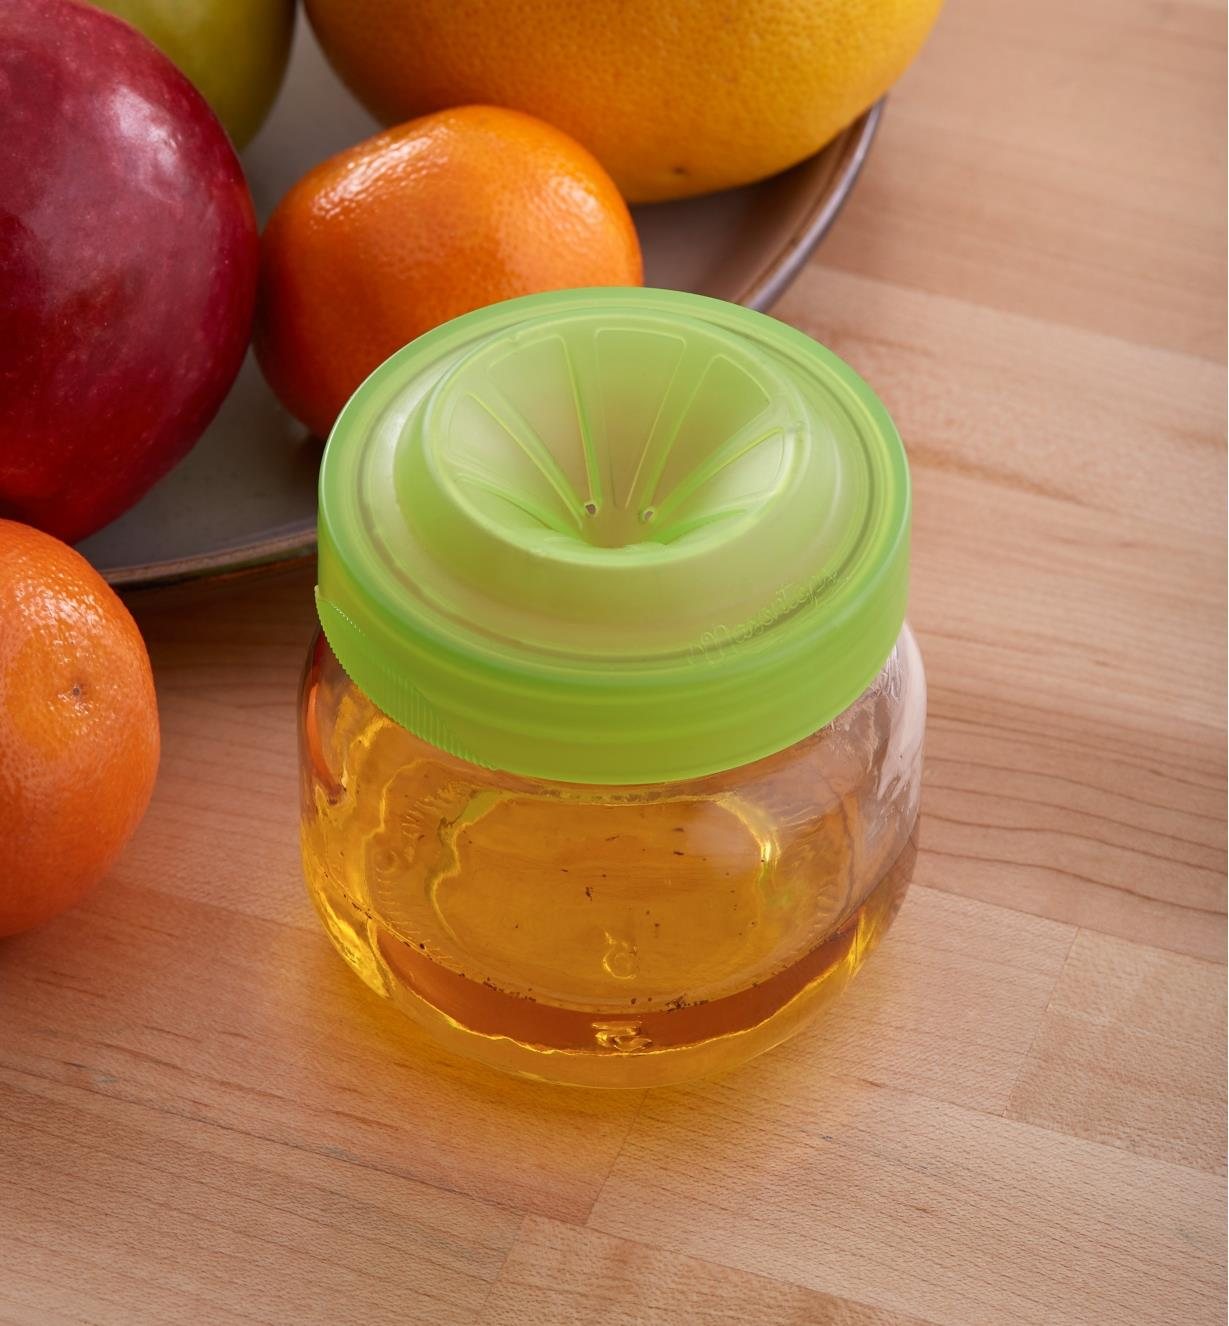 Fruit Fly Trap Cap threaded onto a small jar with liquid inside